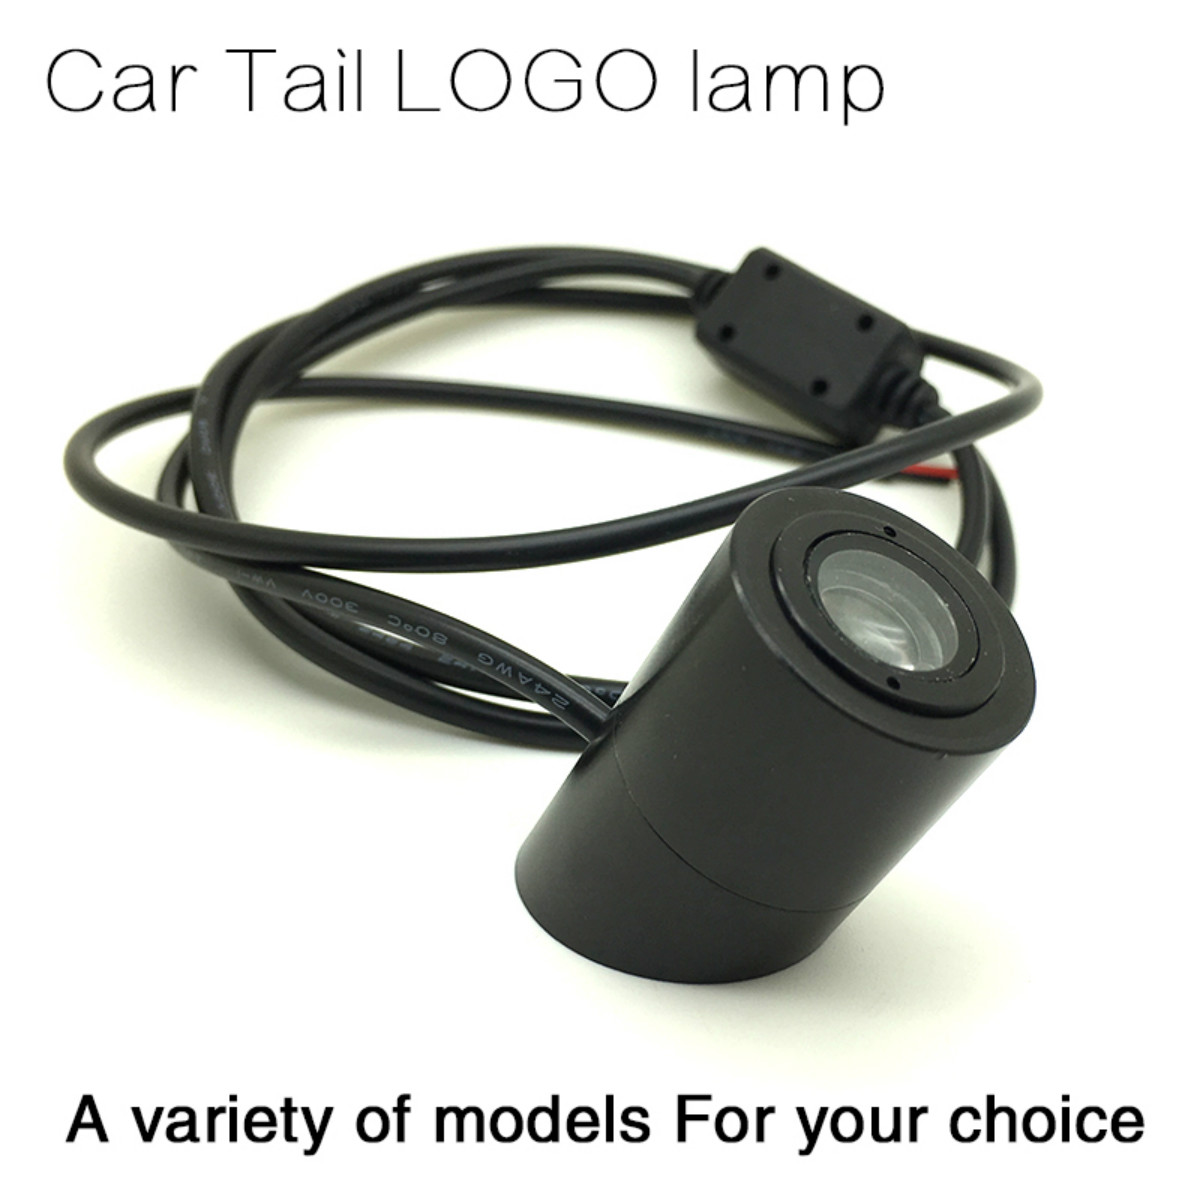 Car Tail Led Light Anti Collision Rear-end Fog Lamp Rearing Warning for Honda CRV Accord Civic Odyssey Element Pilot Jazz City<br><br>Aliexpress